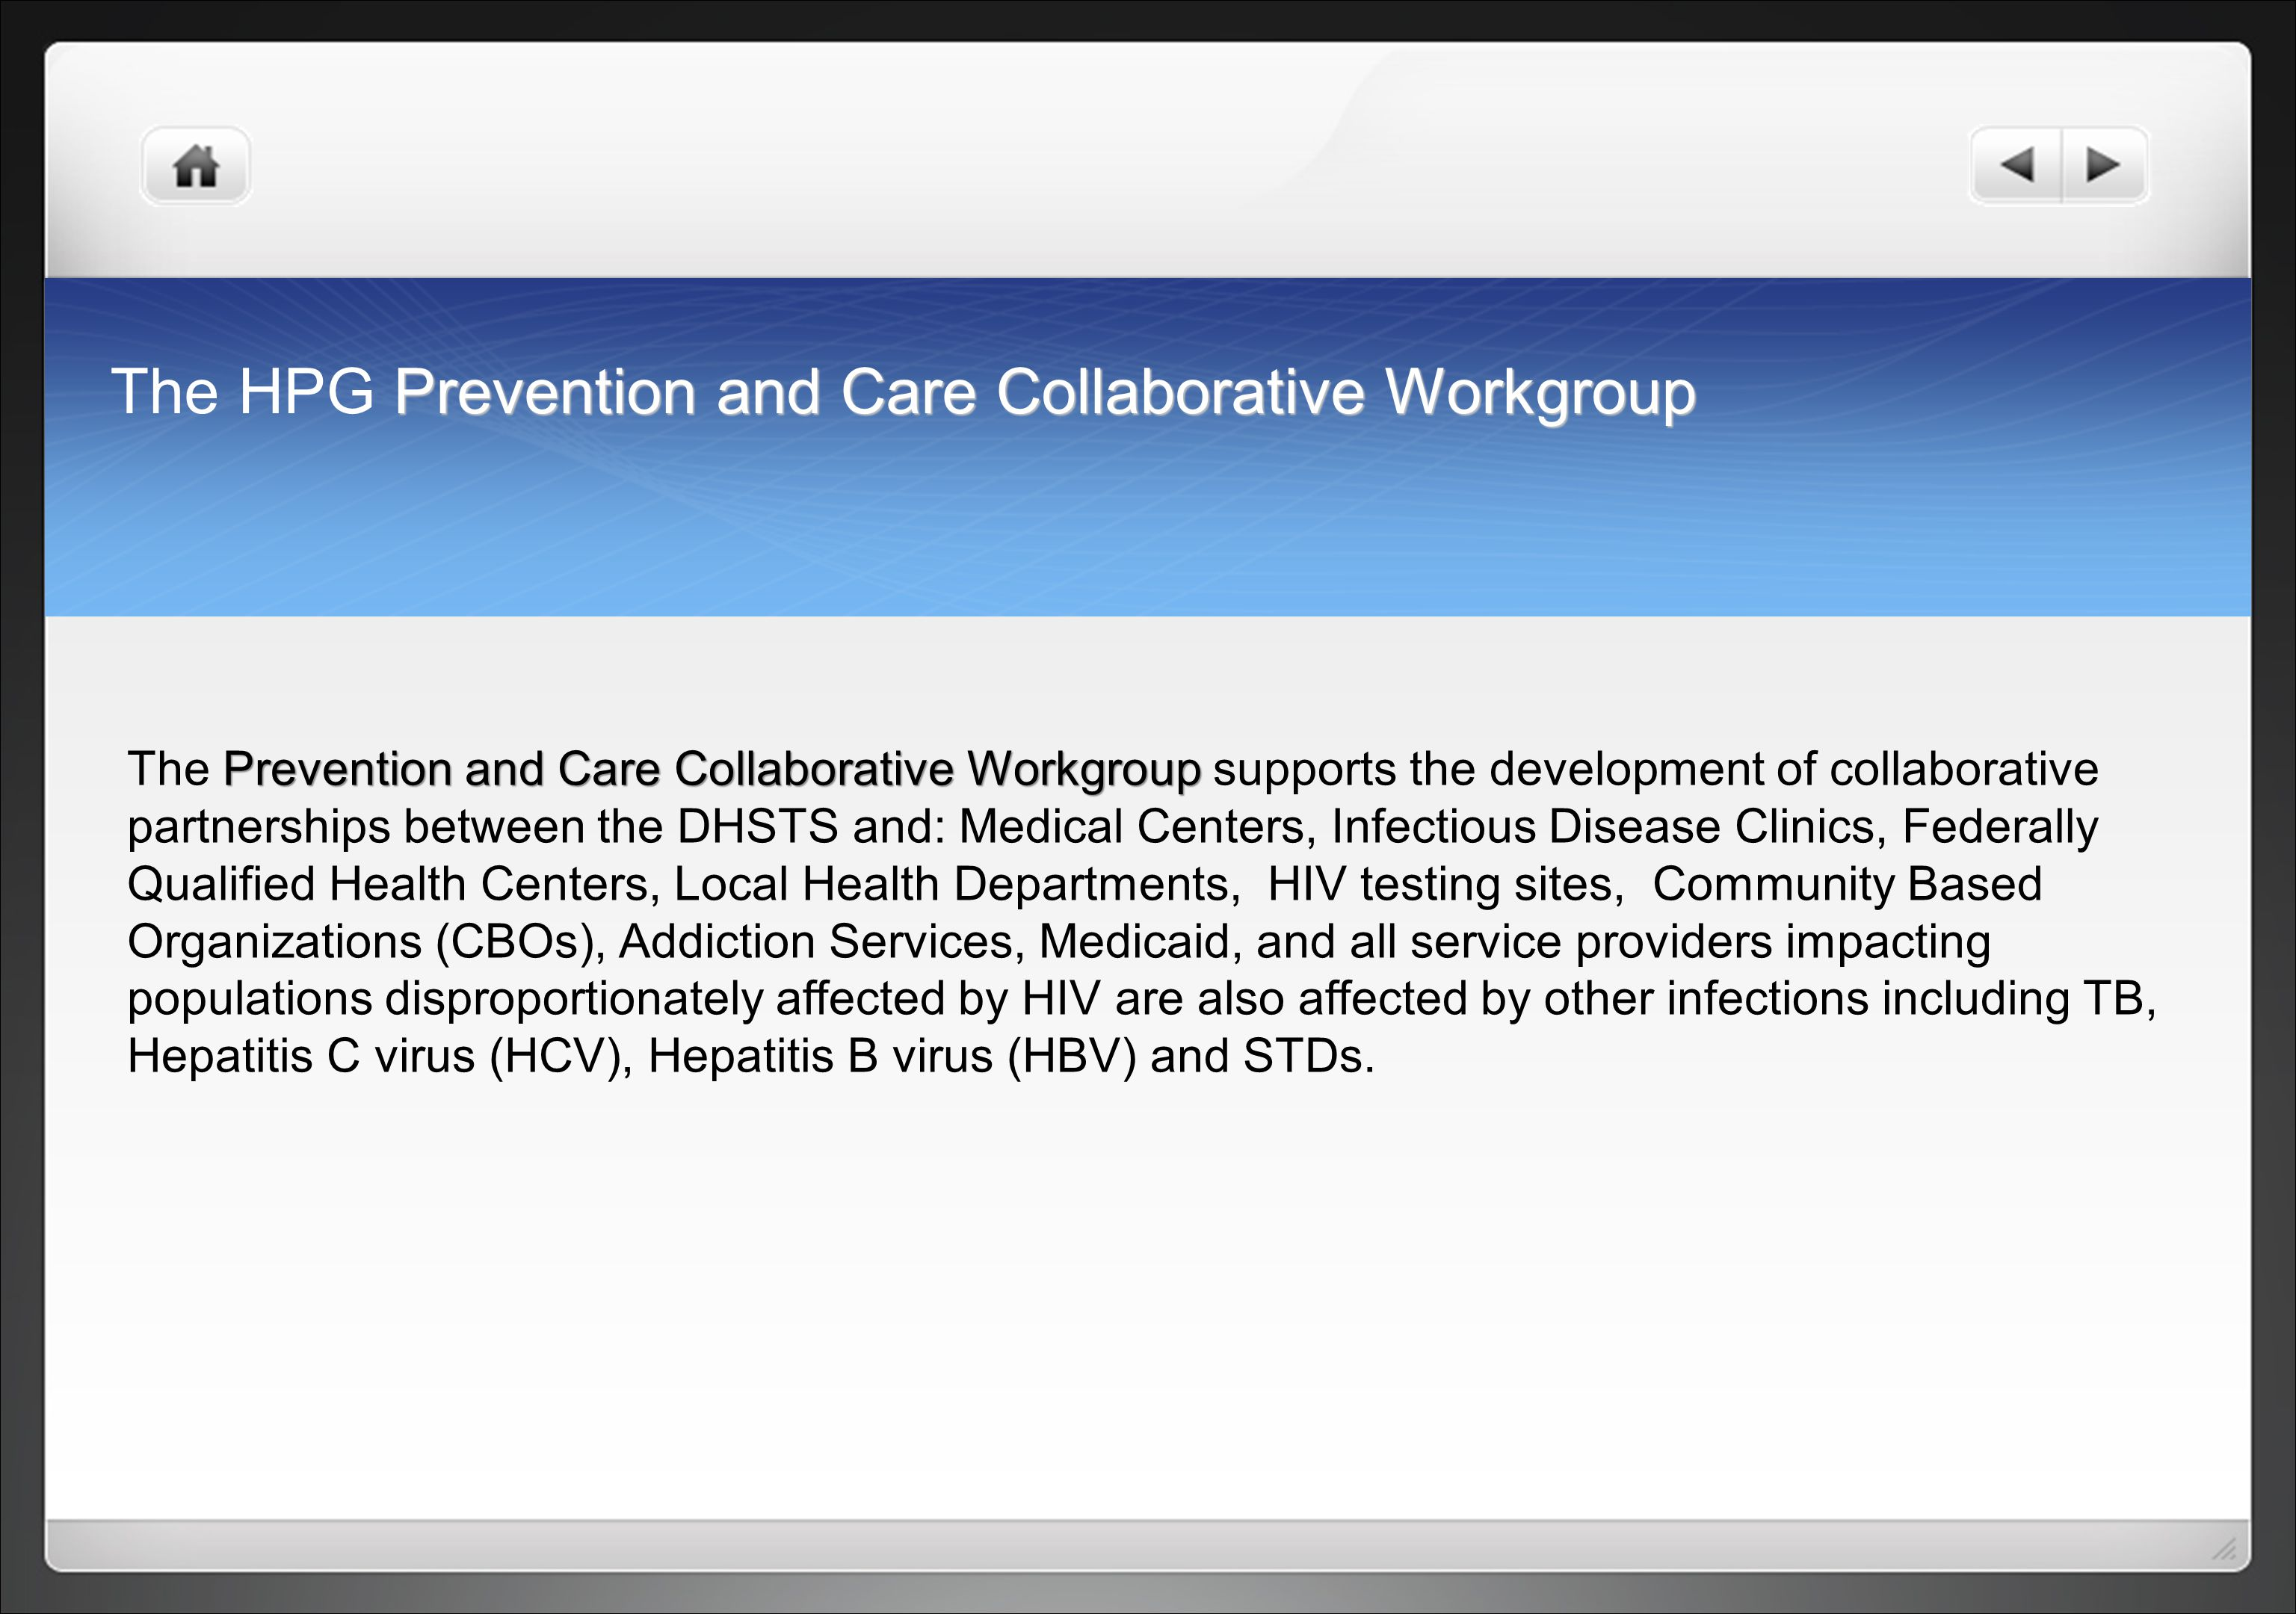 The HPG Prevention and Care Collaborative Workgroup